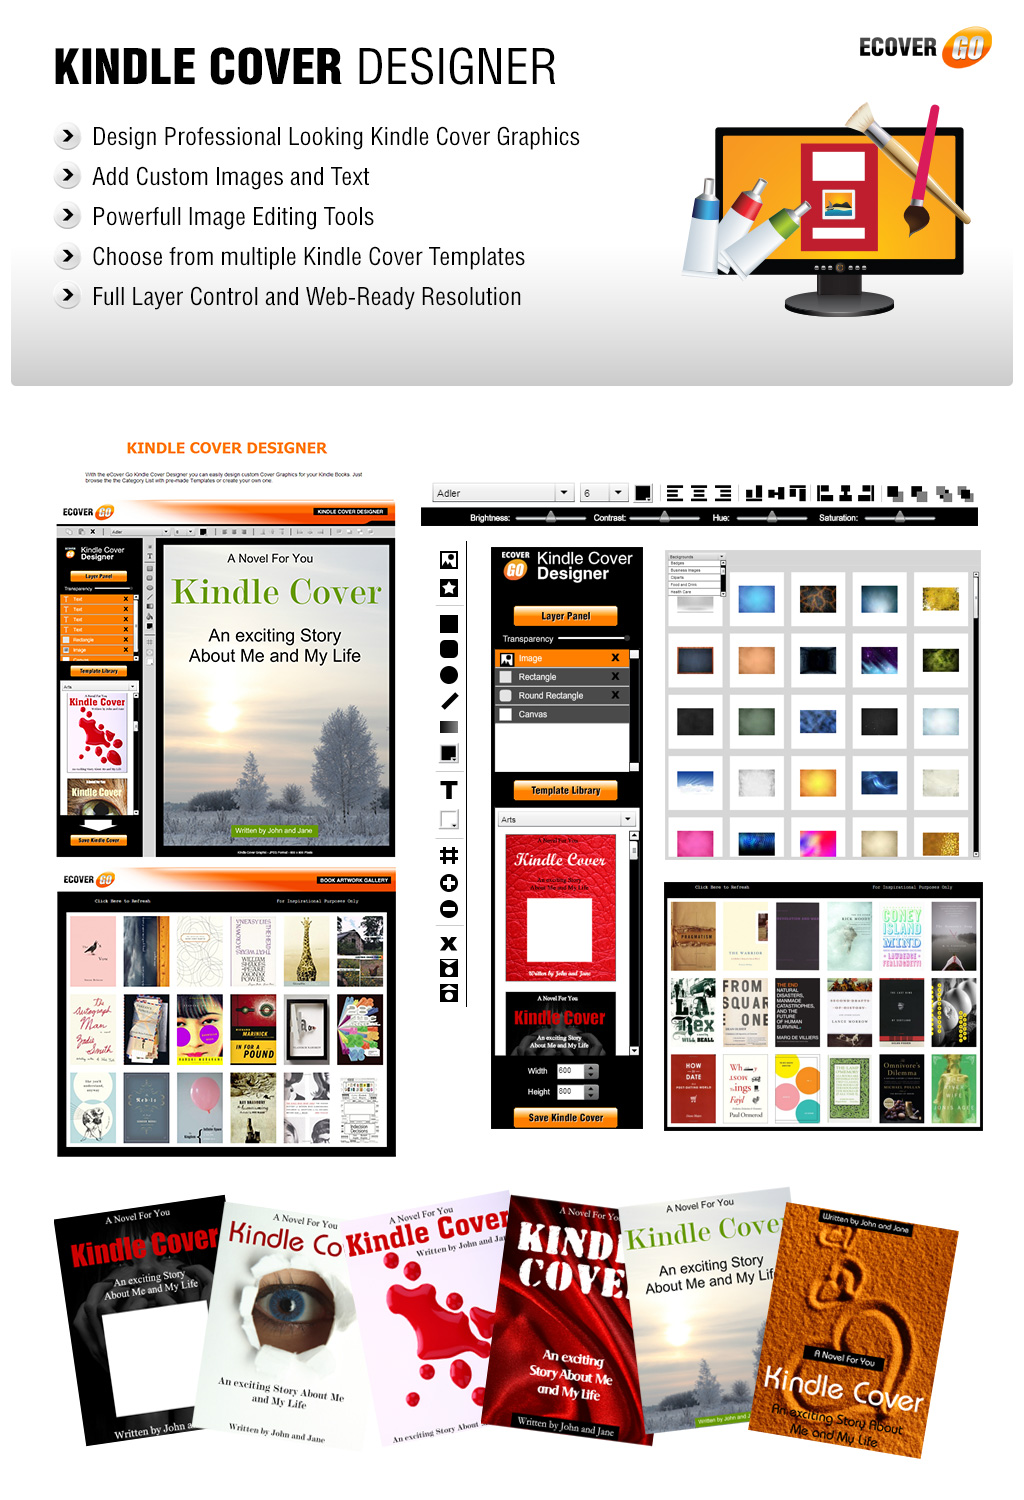 Kindle Book Cover Design : Kindle cover designer ecover go online graphics suite